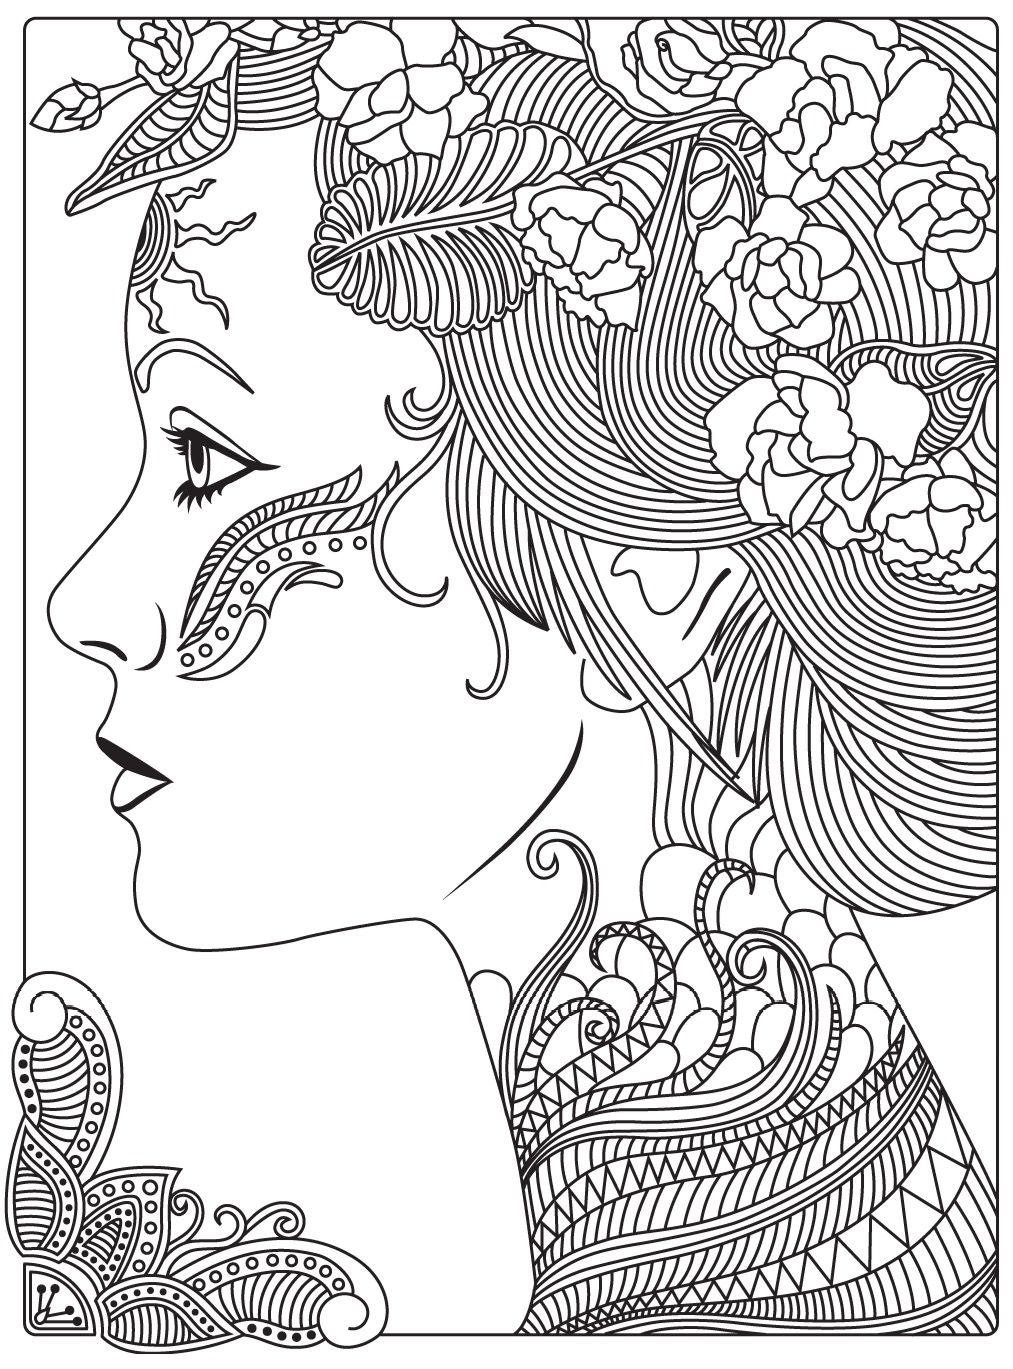 Art therapy coloring book and pencils - Coloring Books